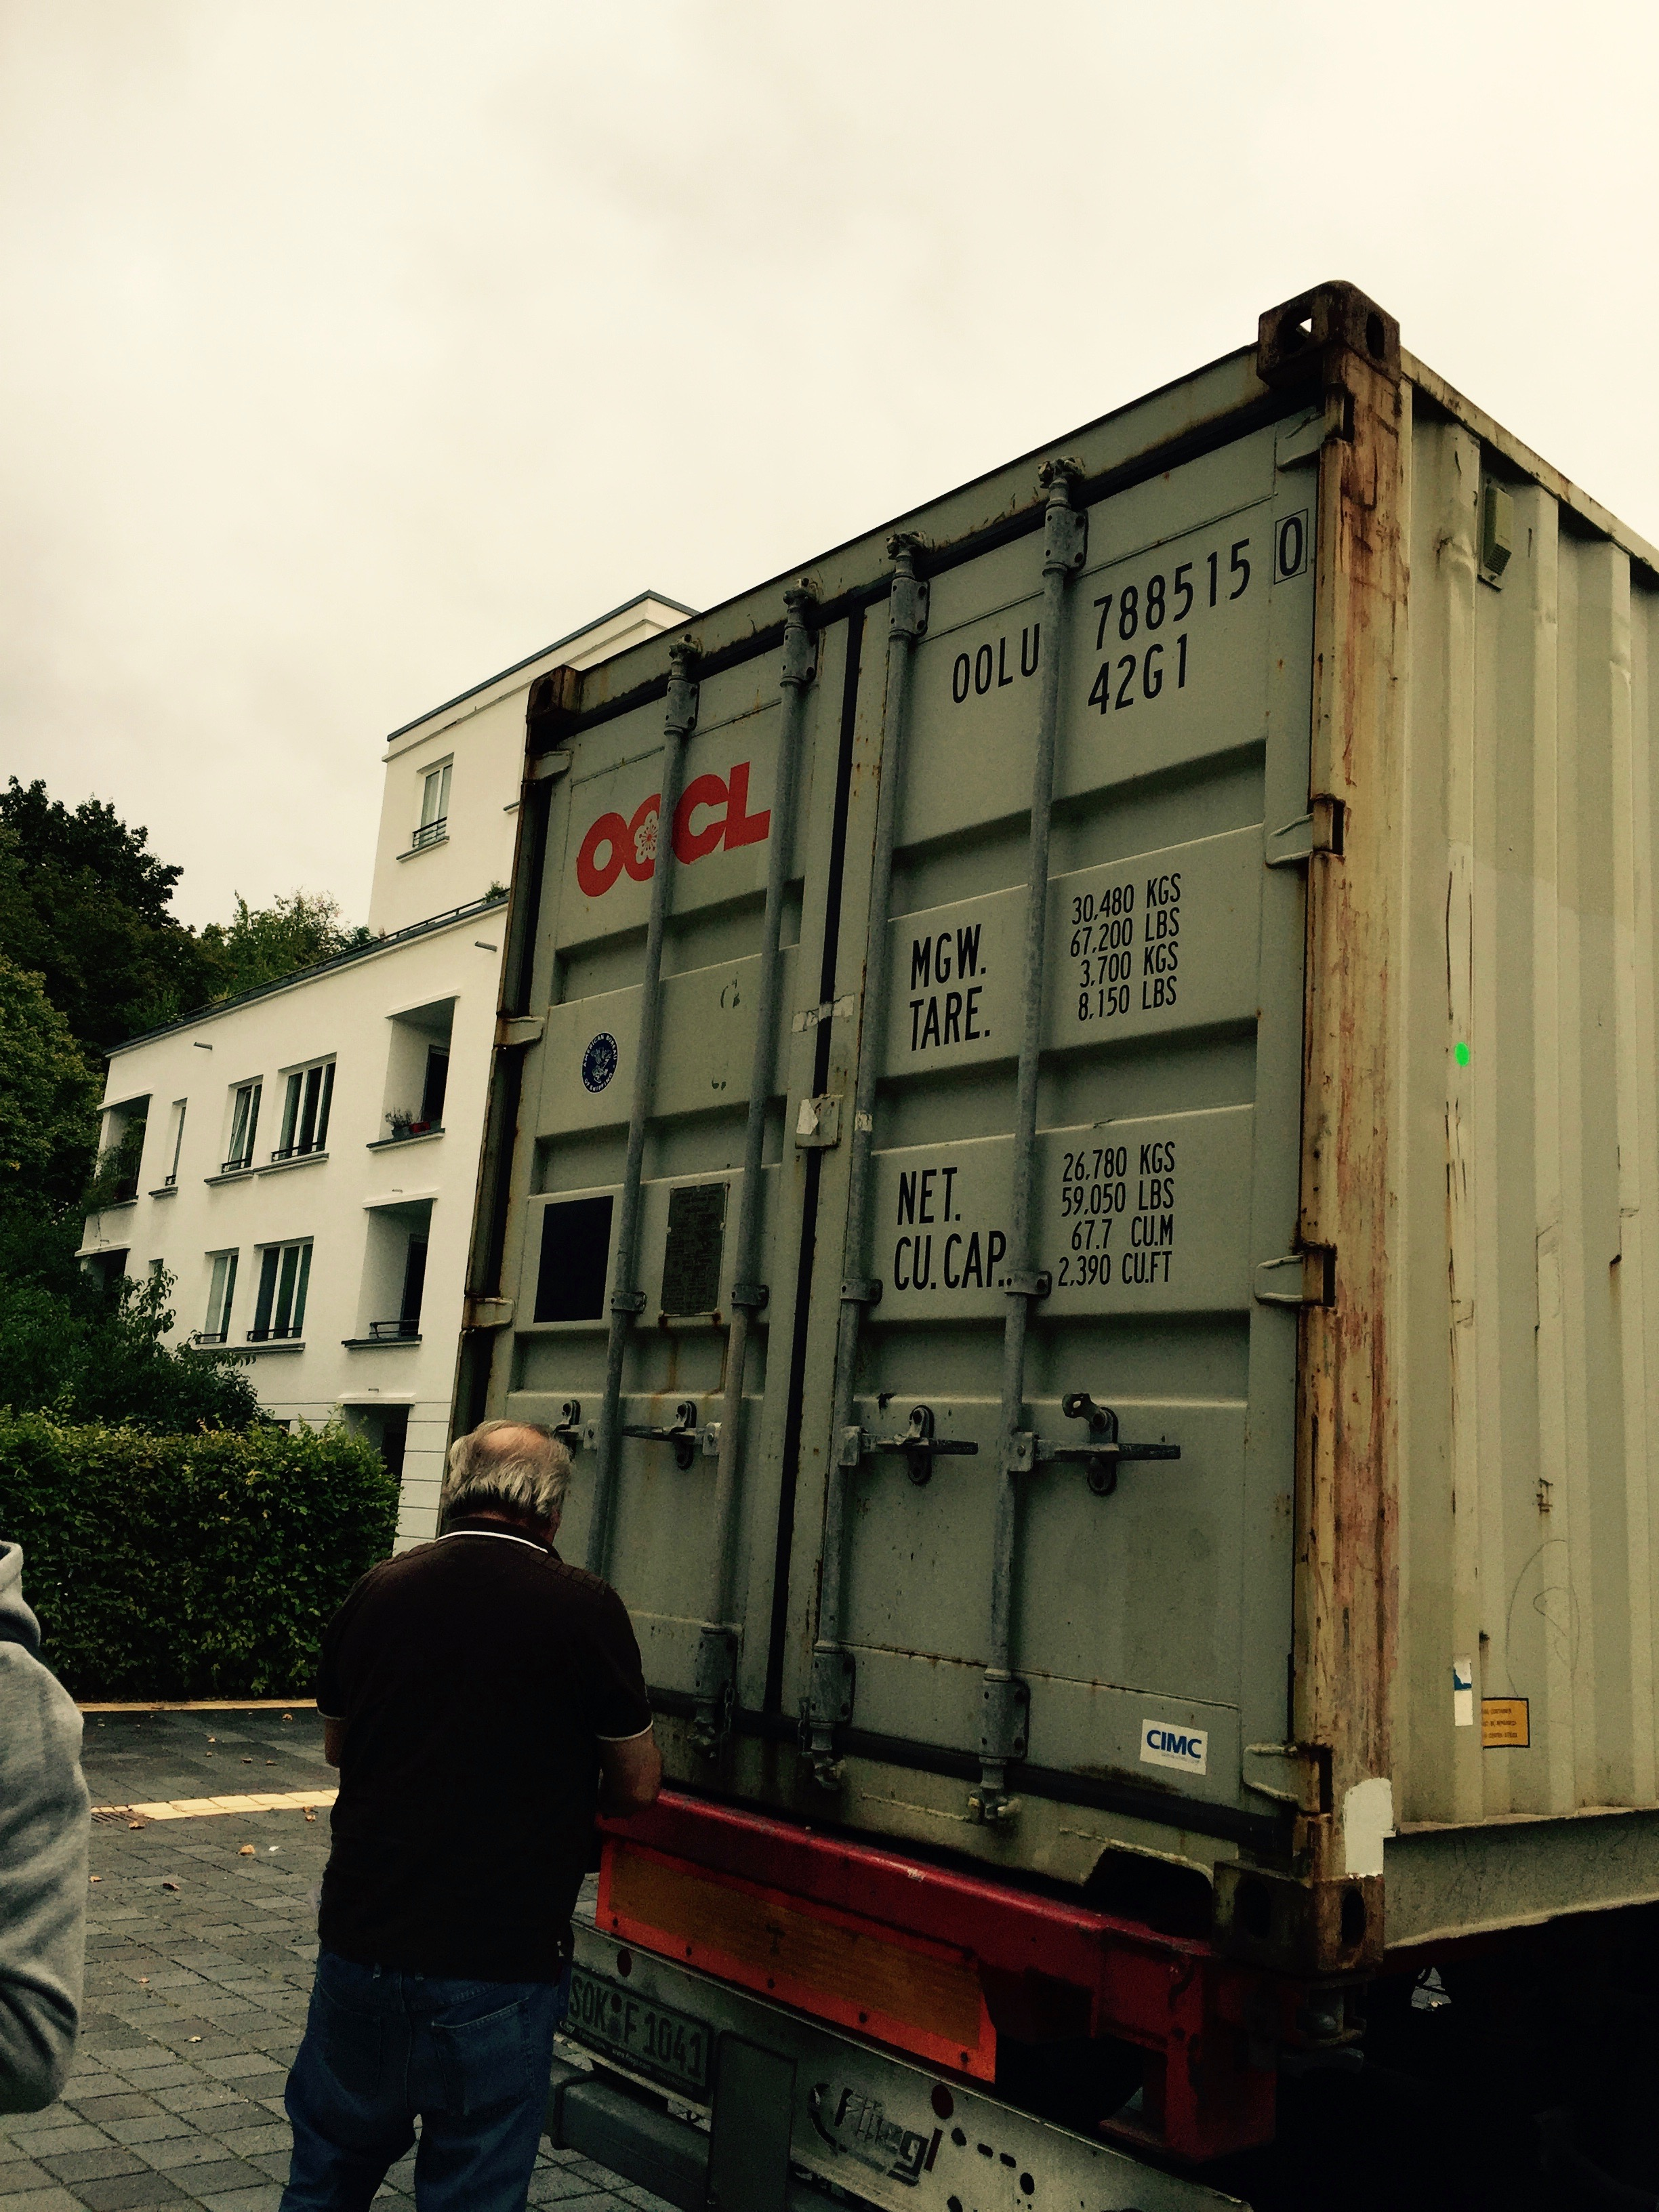 our container